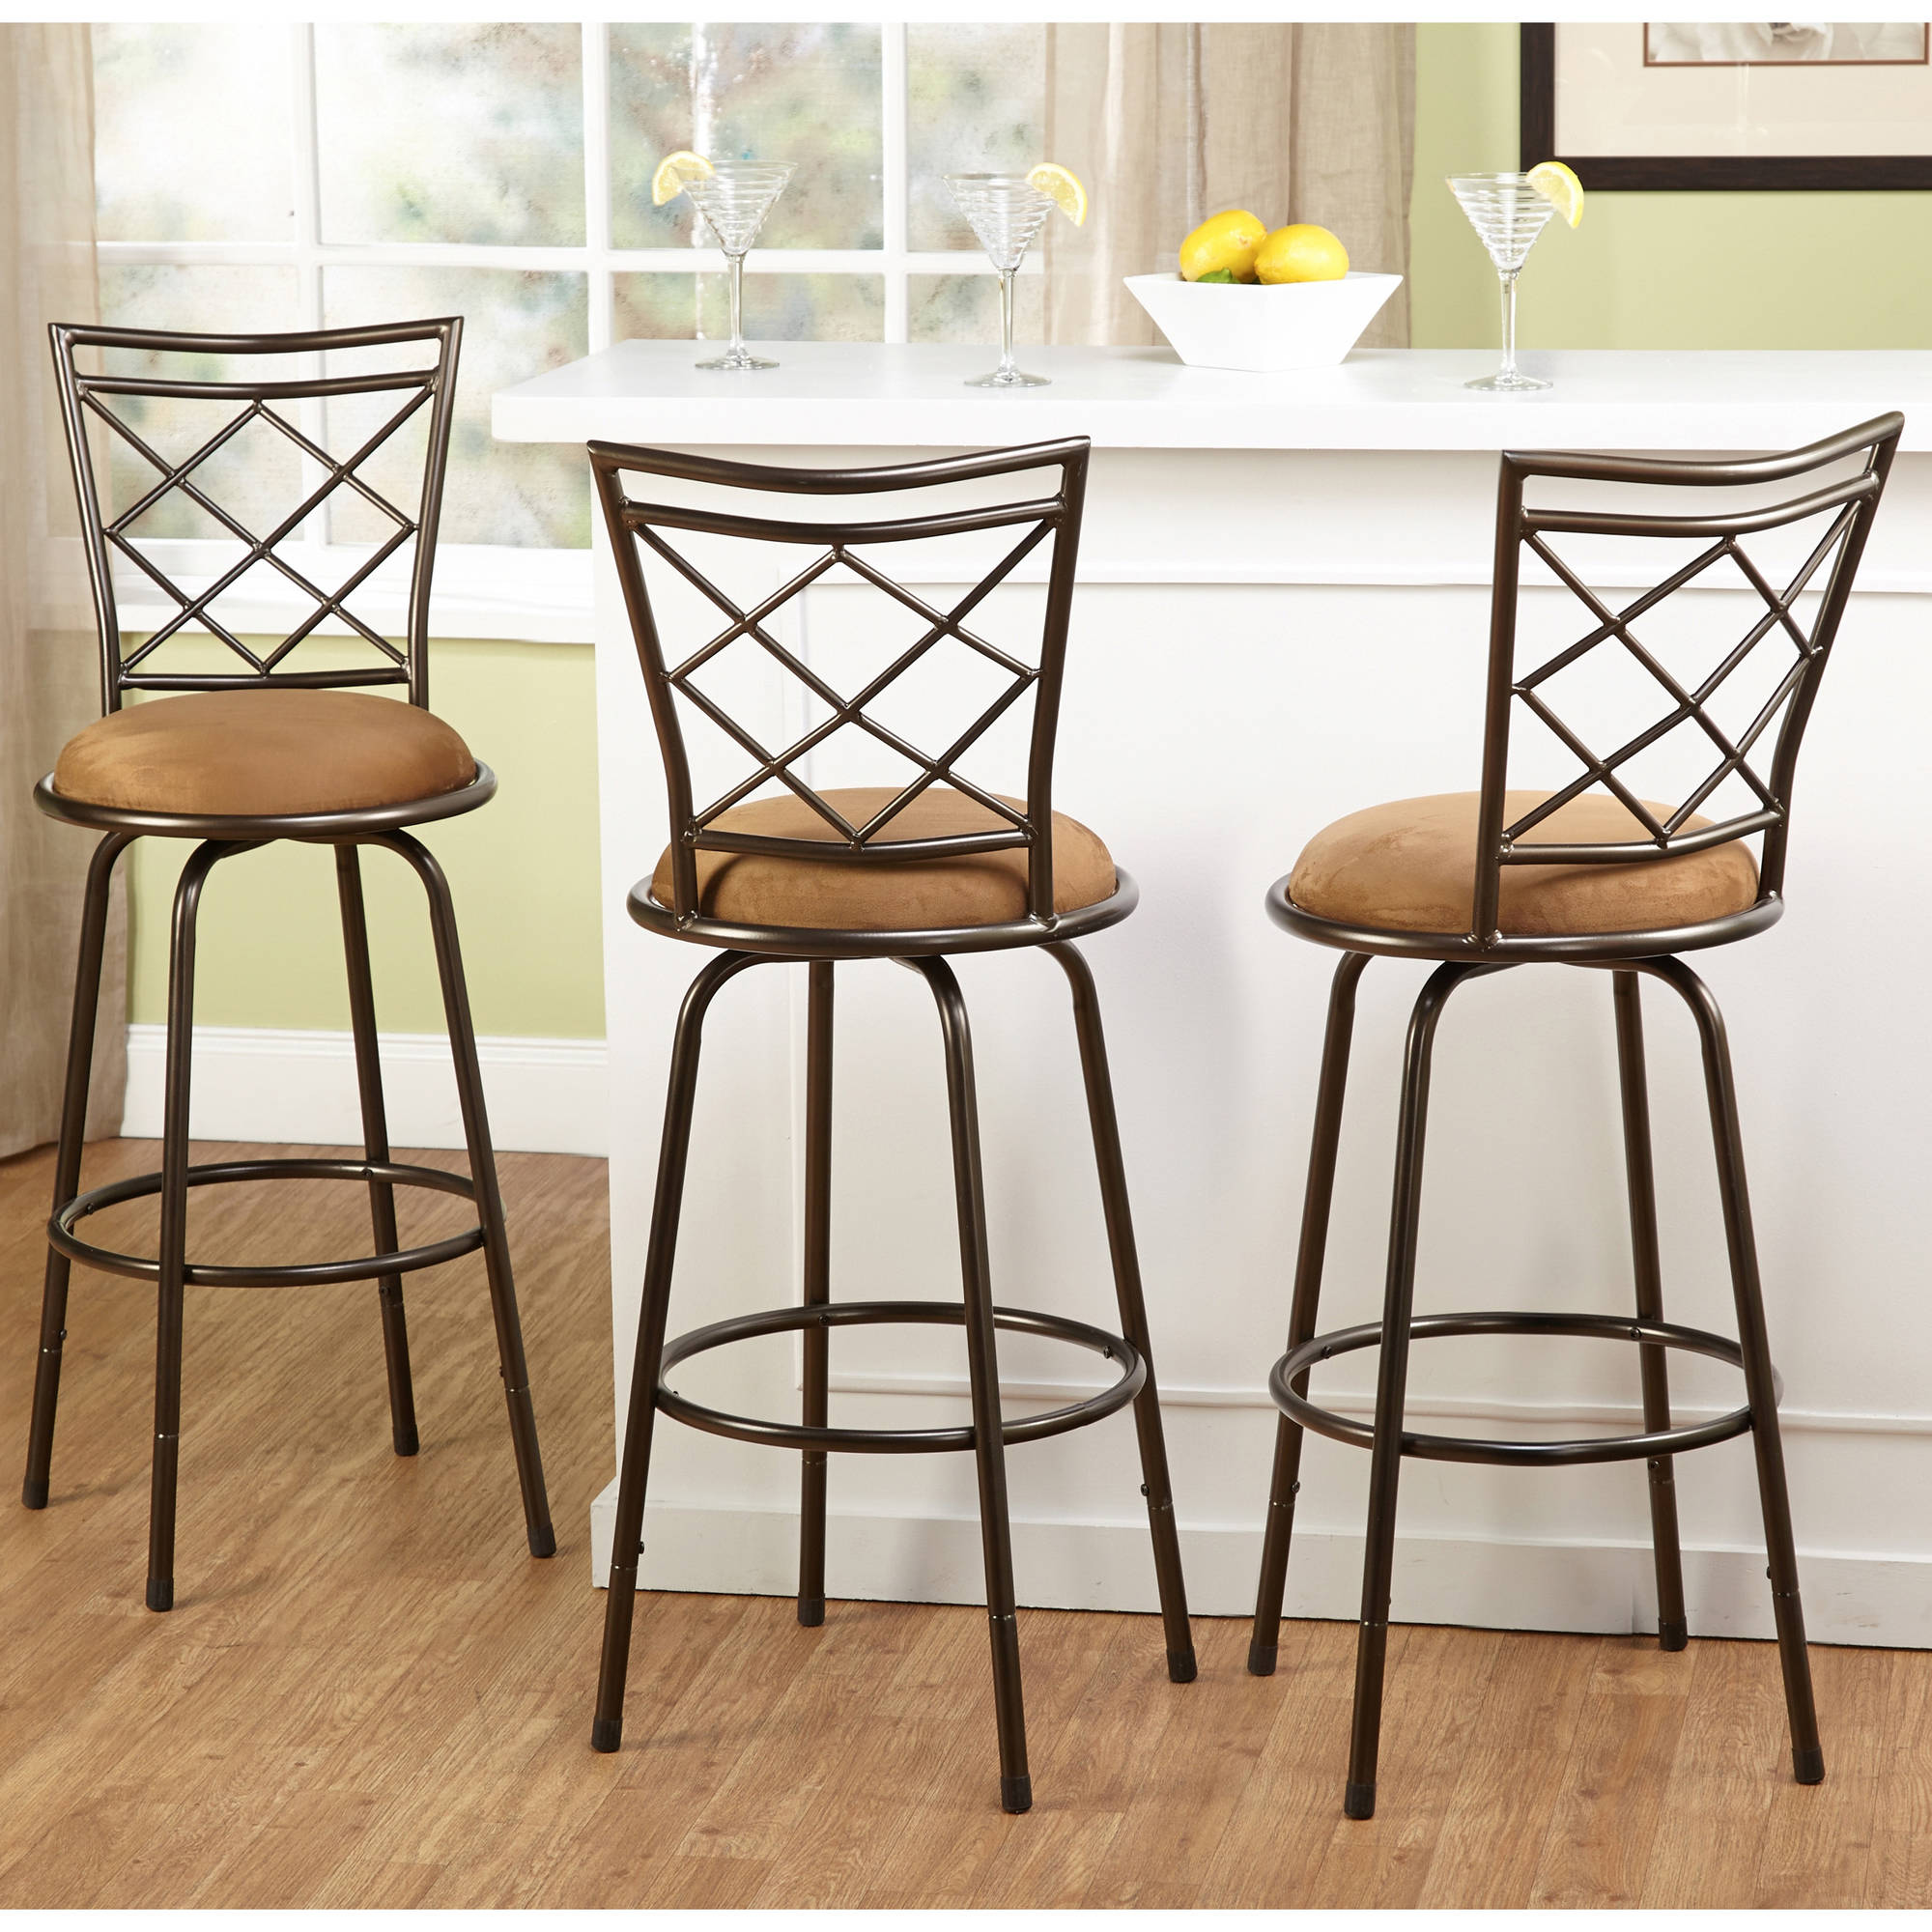 Tms Avery Adjustable Height Bar Stool Multiple Colors Set Of 3